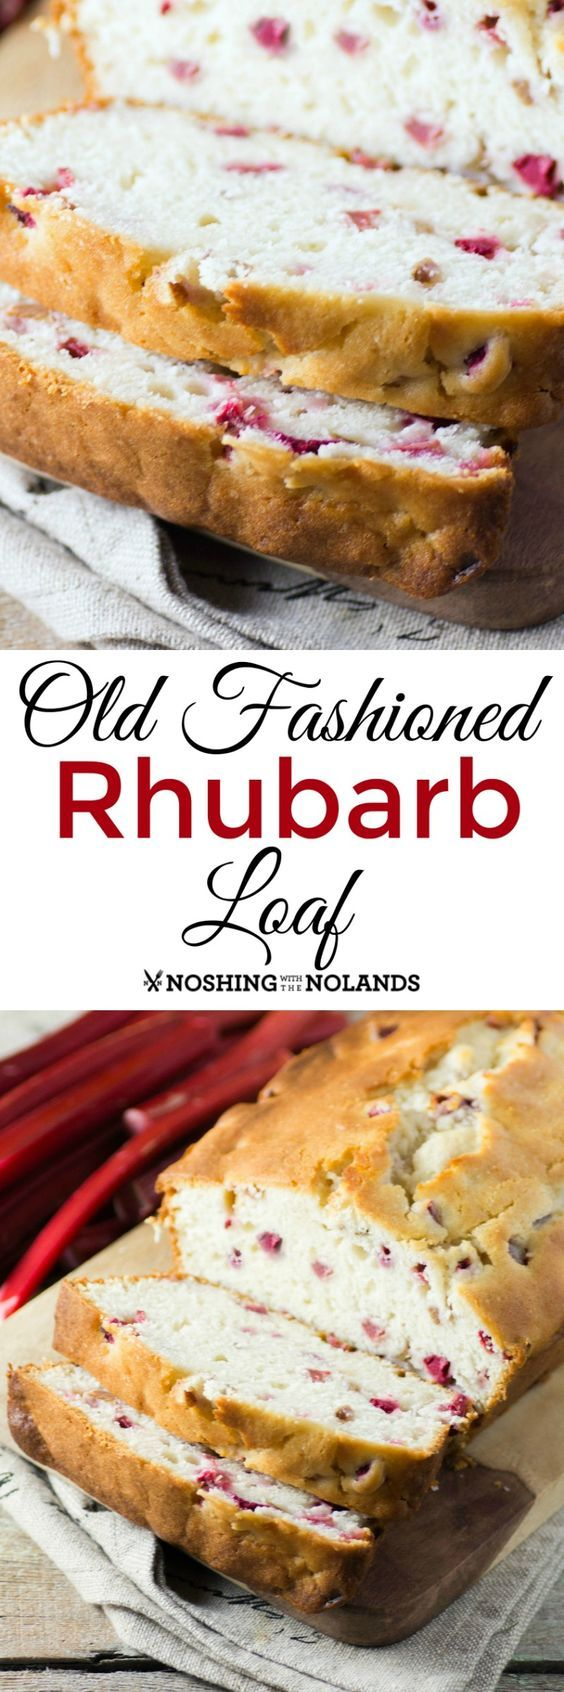 My rhubarb patch with purely the inspiration for this Old Fashioned Rhubarb Loaf. The weather seems to be changing a lot for us all.